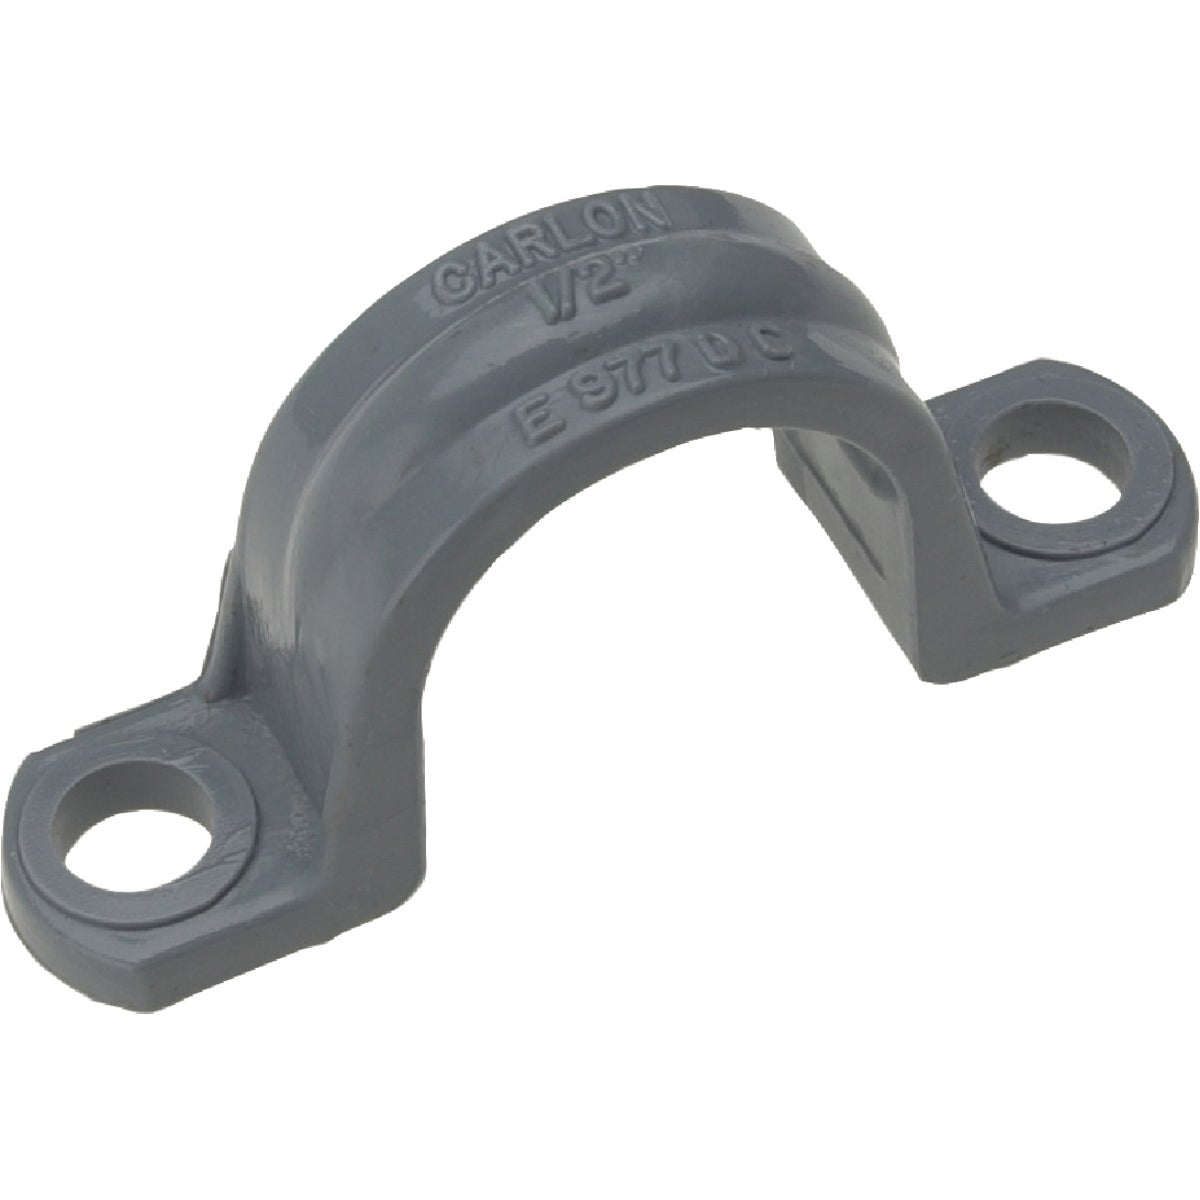 "3/4"" PVC STRAP - E977ECCTN by Thomas & Betts"